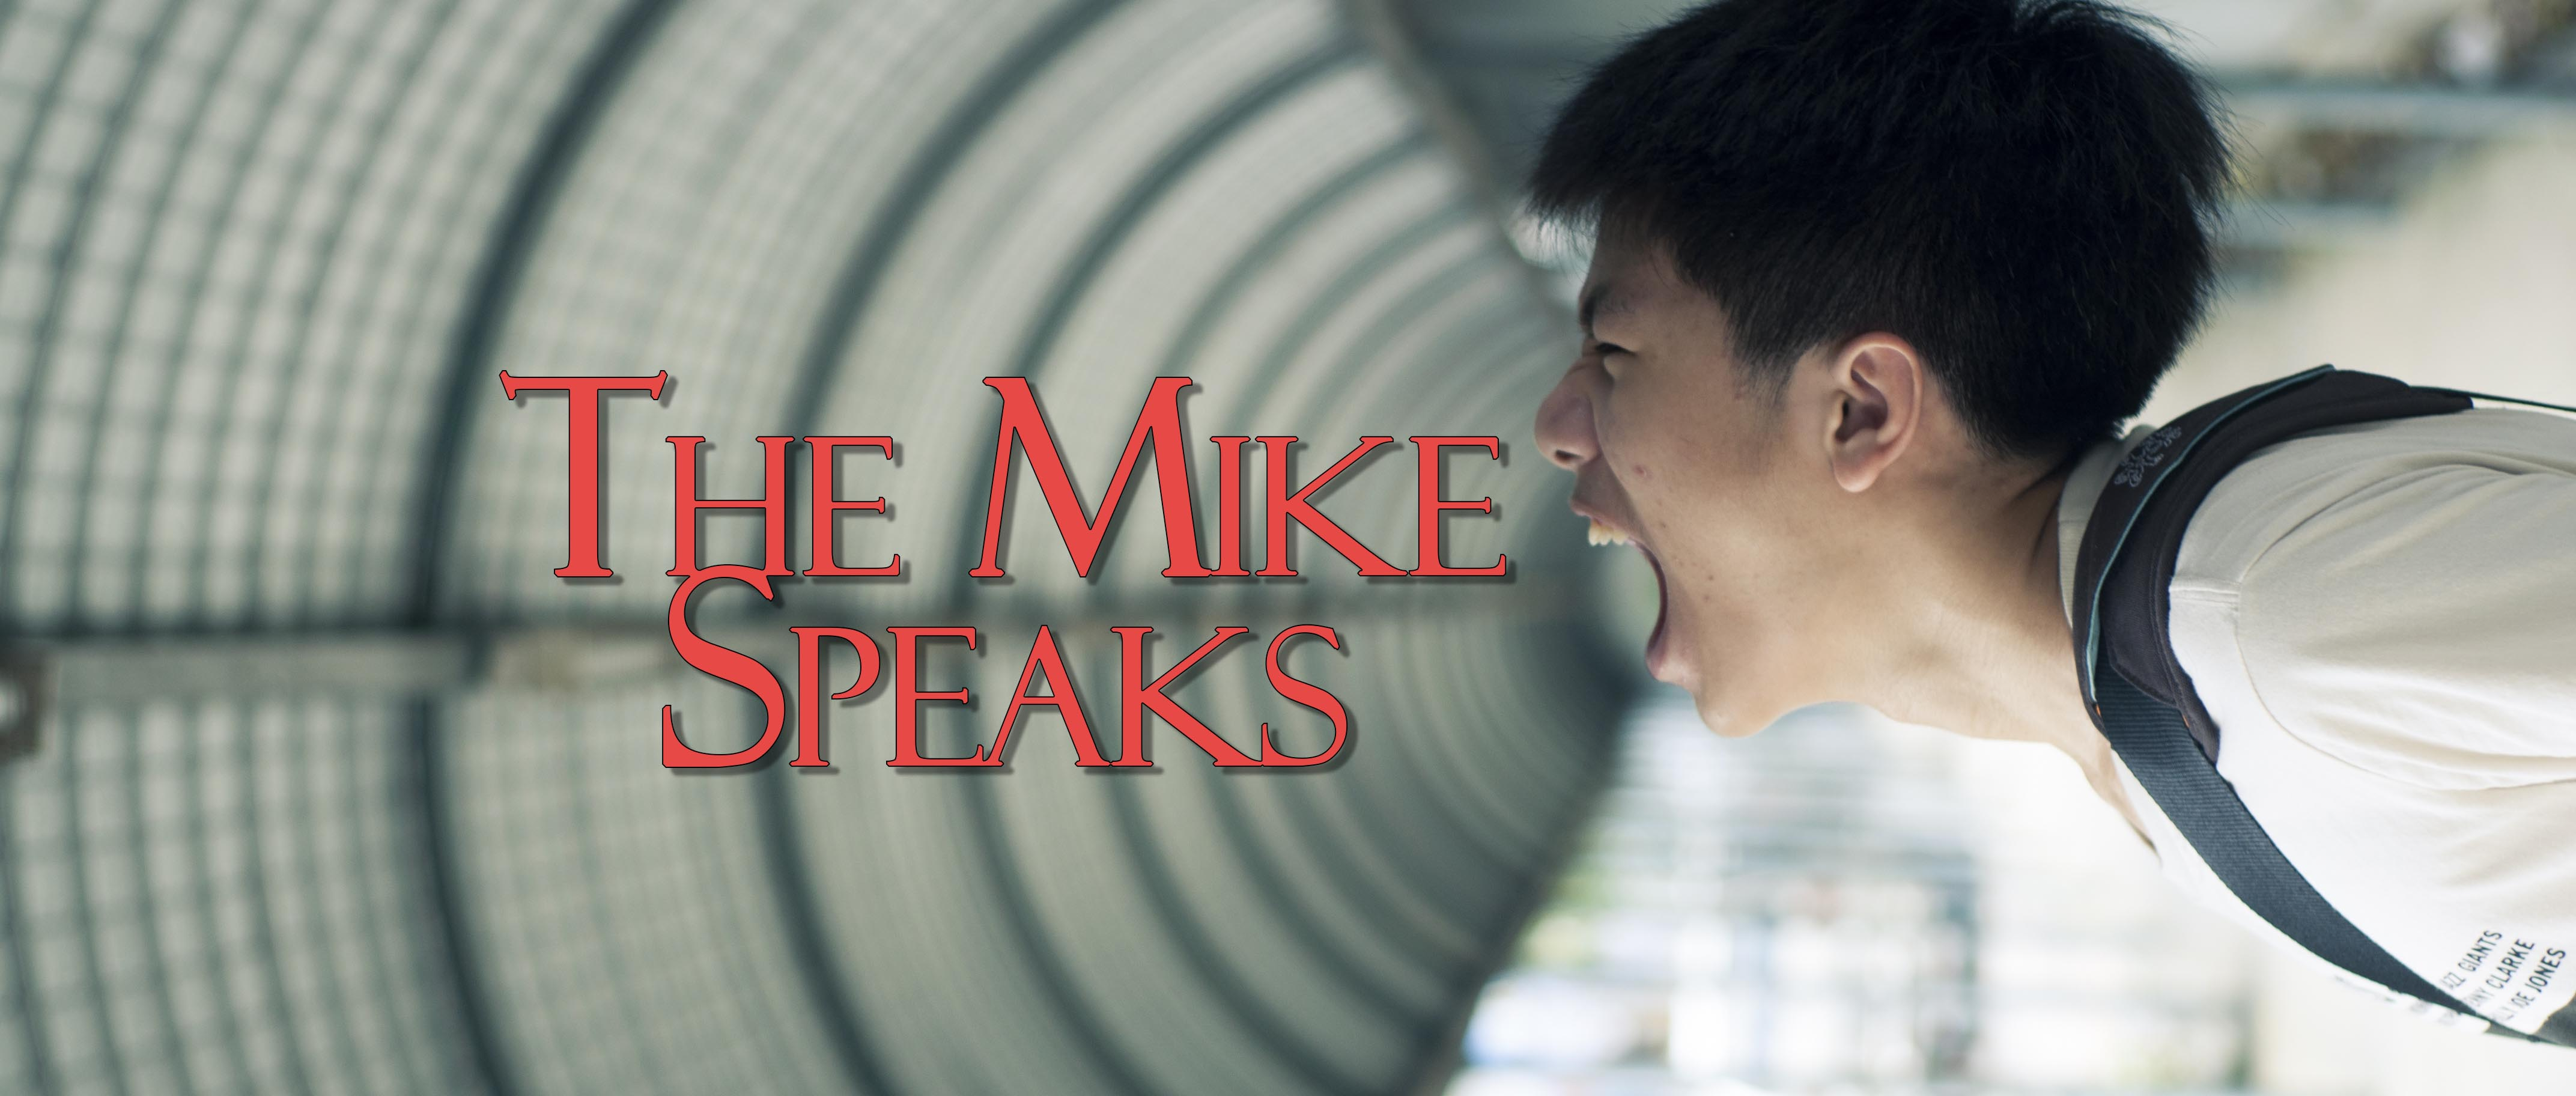 The Mike Speaks